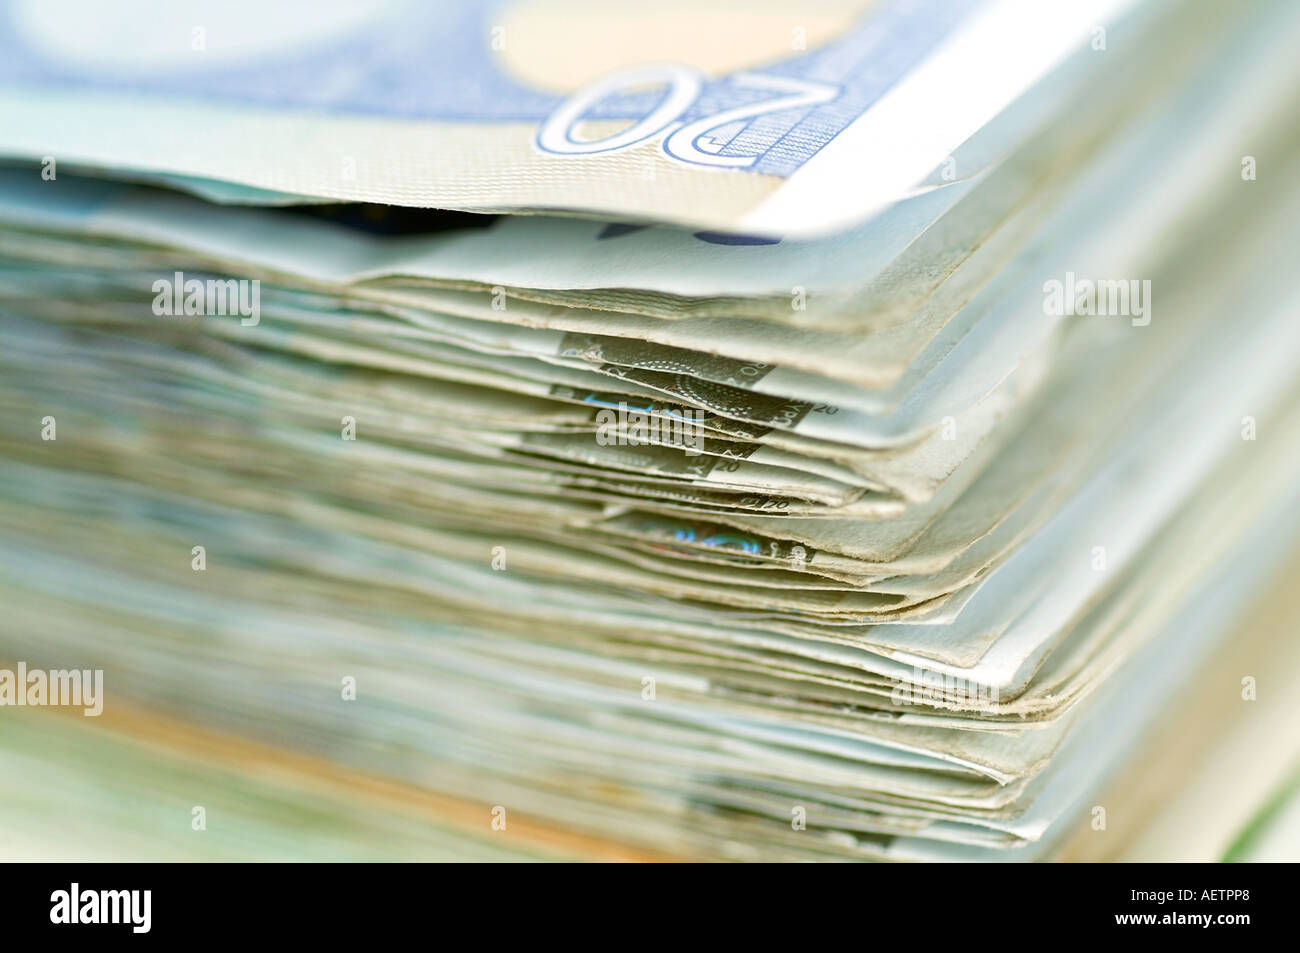 Pile of banknotes - Stock Image